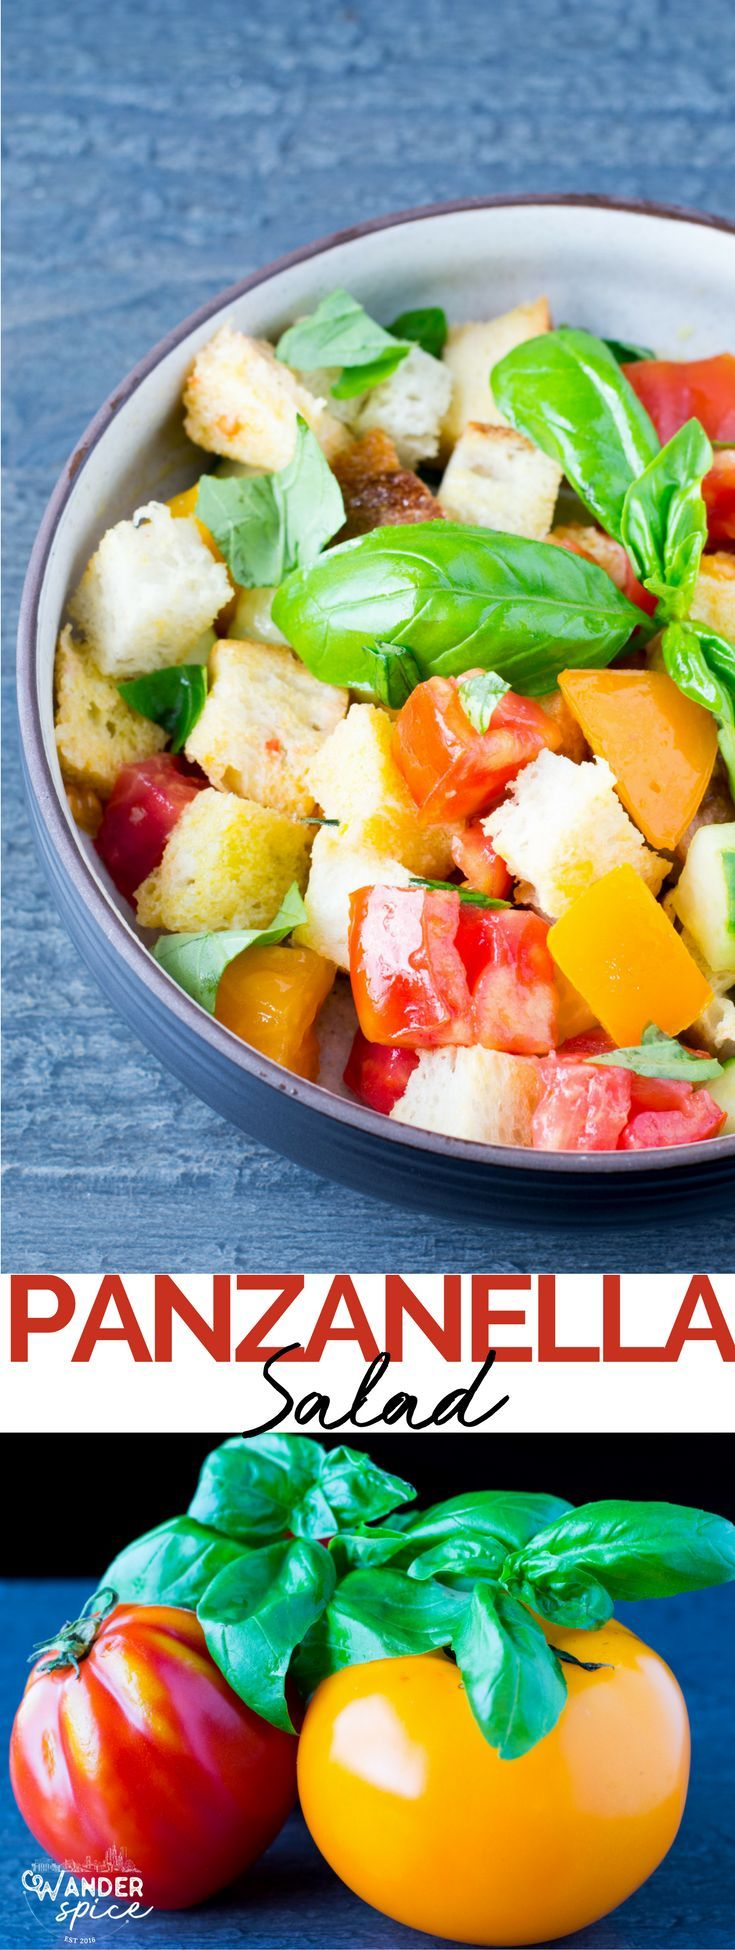 Panzanella Salad - chunky tomatoes, big basil leaves, torn bread doused in olive oil and vinegar.